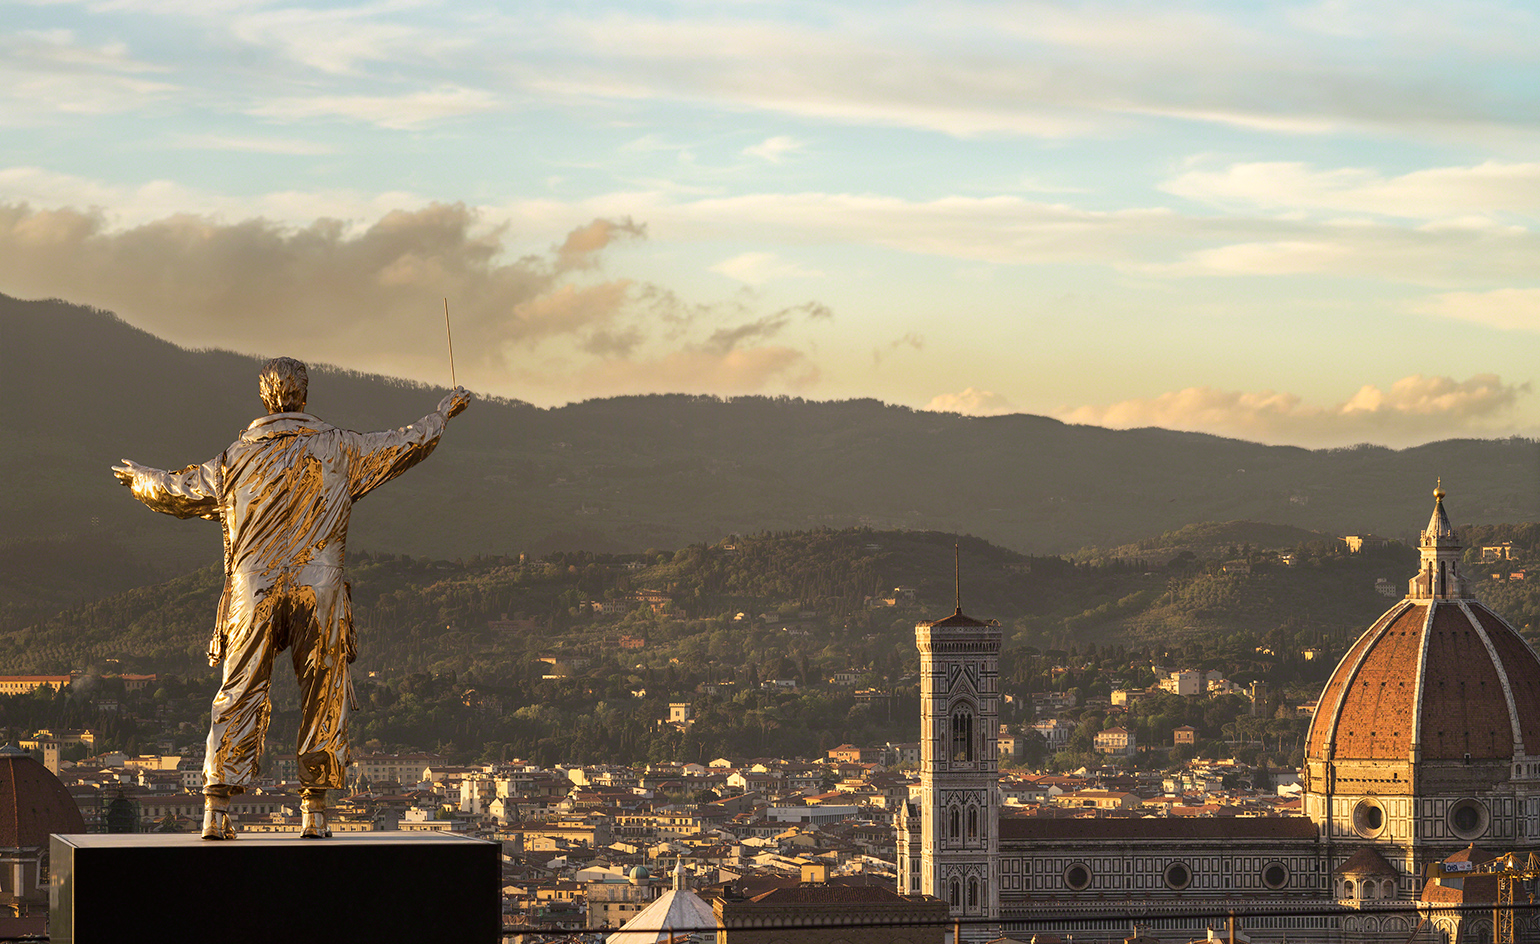 Renaissance man: Jan Fabre's sculptural dialogue with Florence